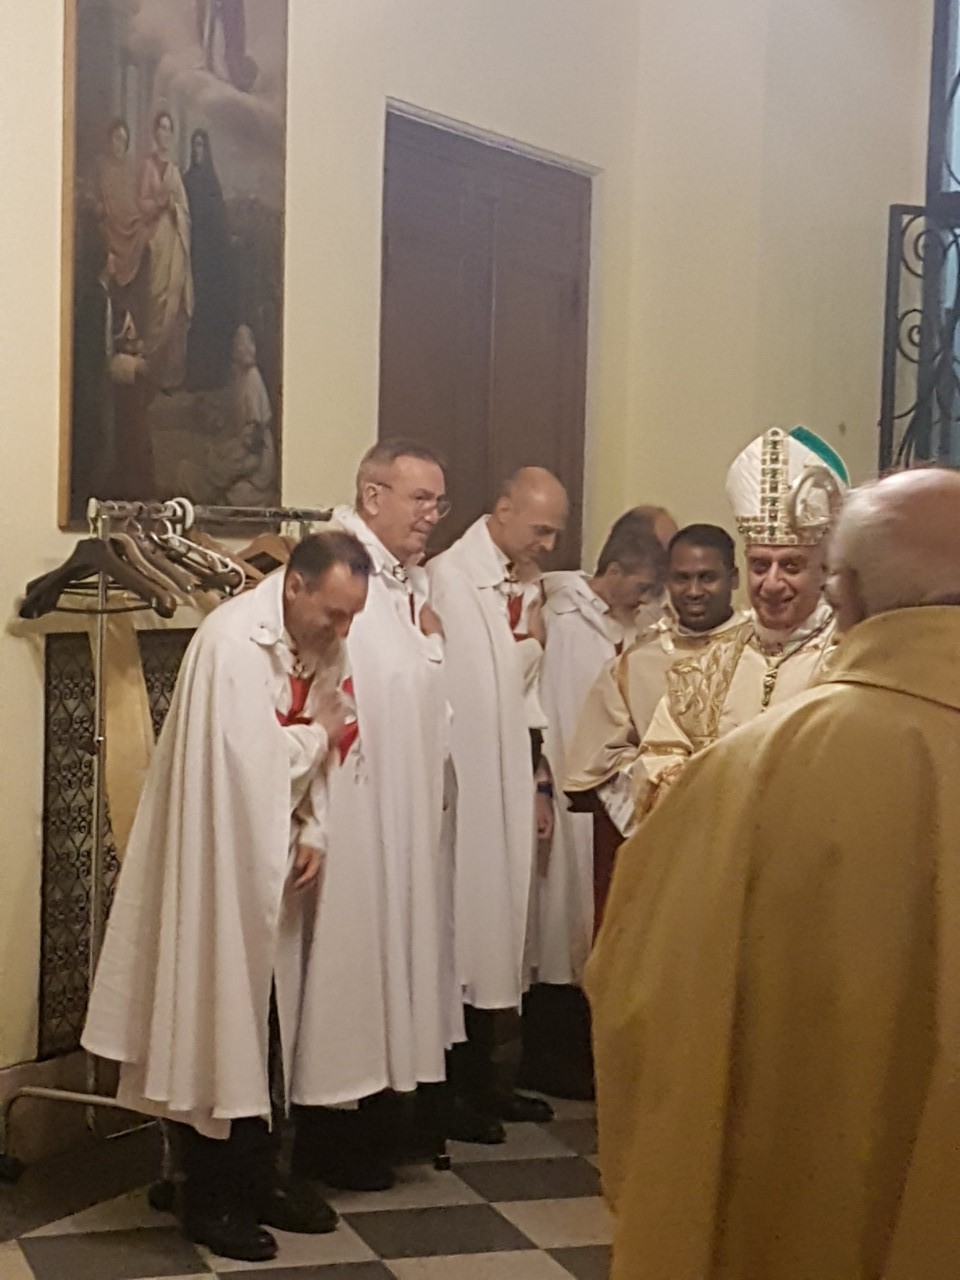 The Archbishop His Eminence Monsignor Fisichella presides the Solemnity of Saint John Leonardi at the Sanctuary of Santa Maria In Portico in Campitelli